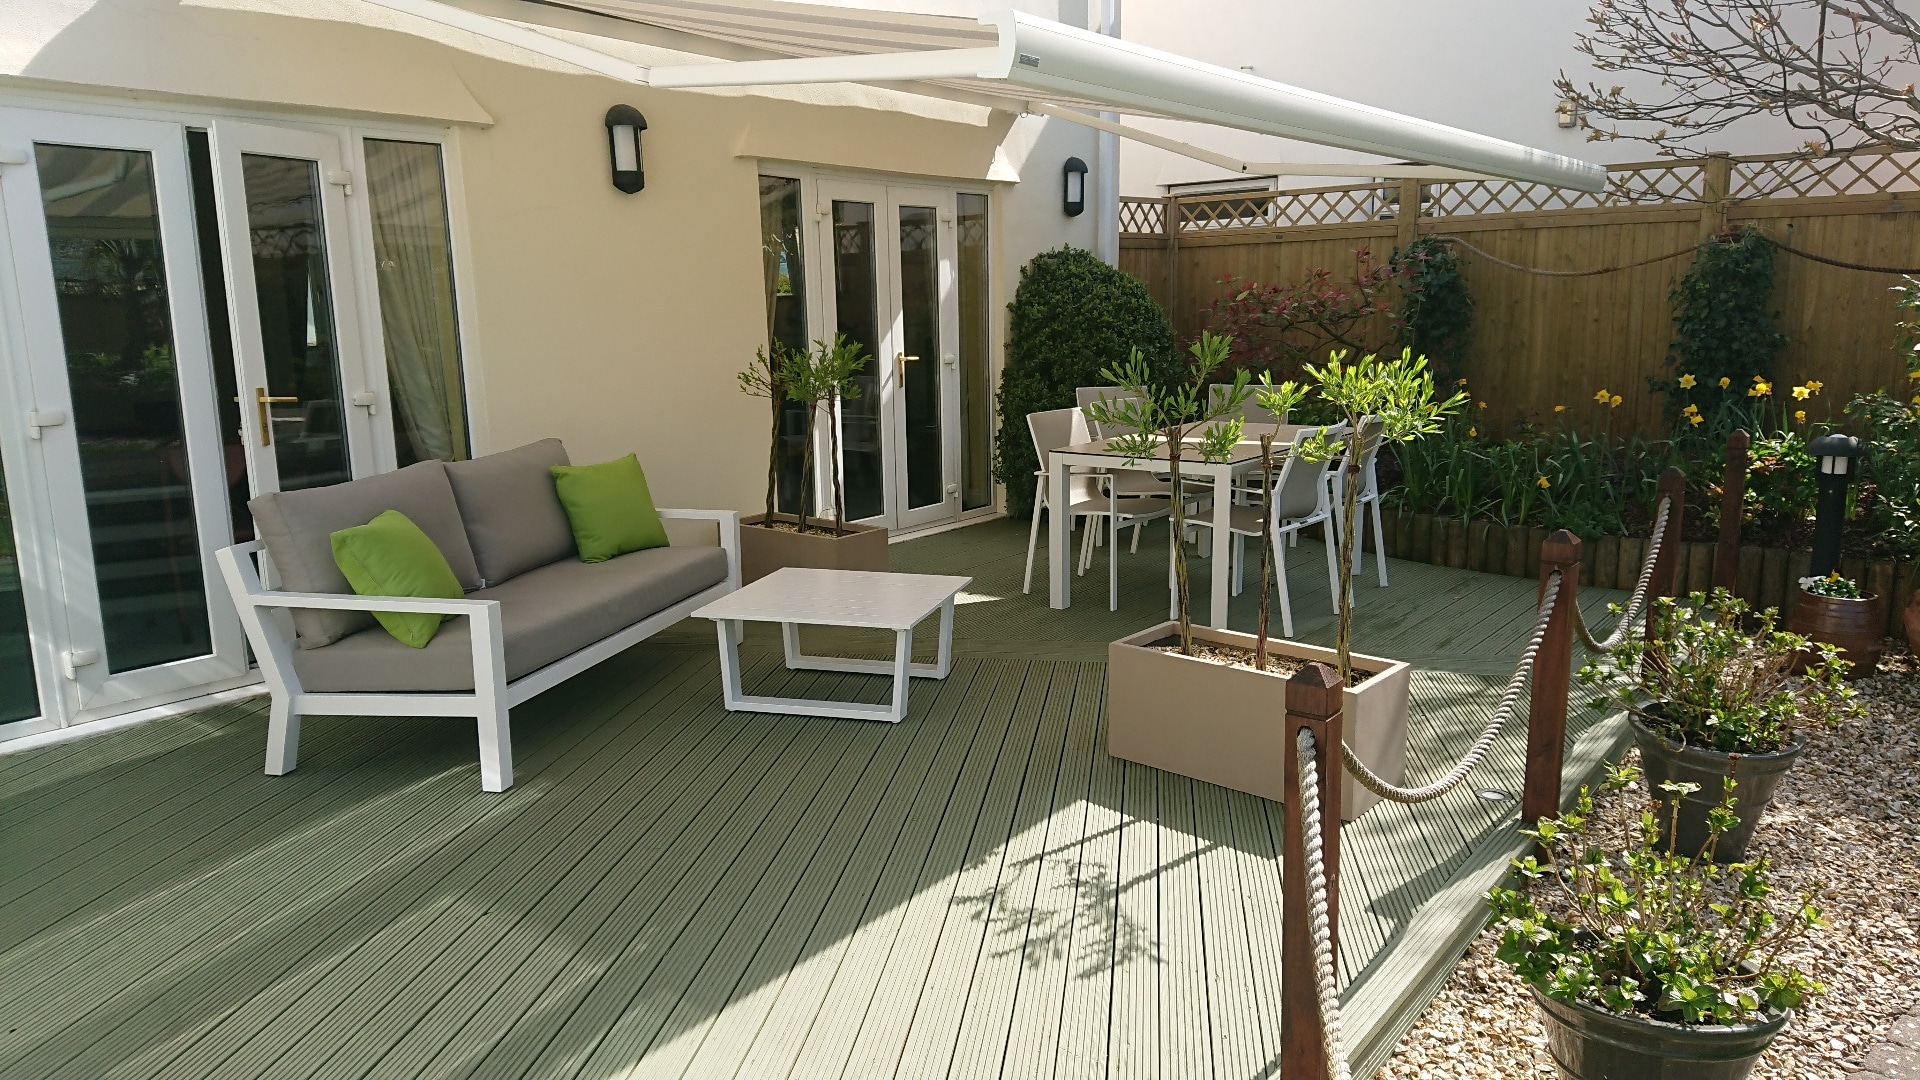 Garden deck with green paint finish